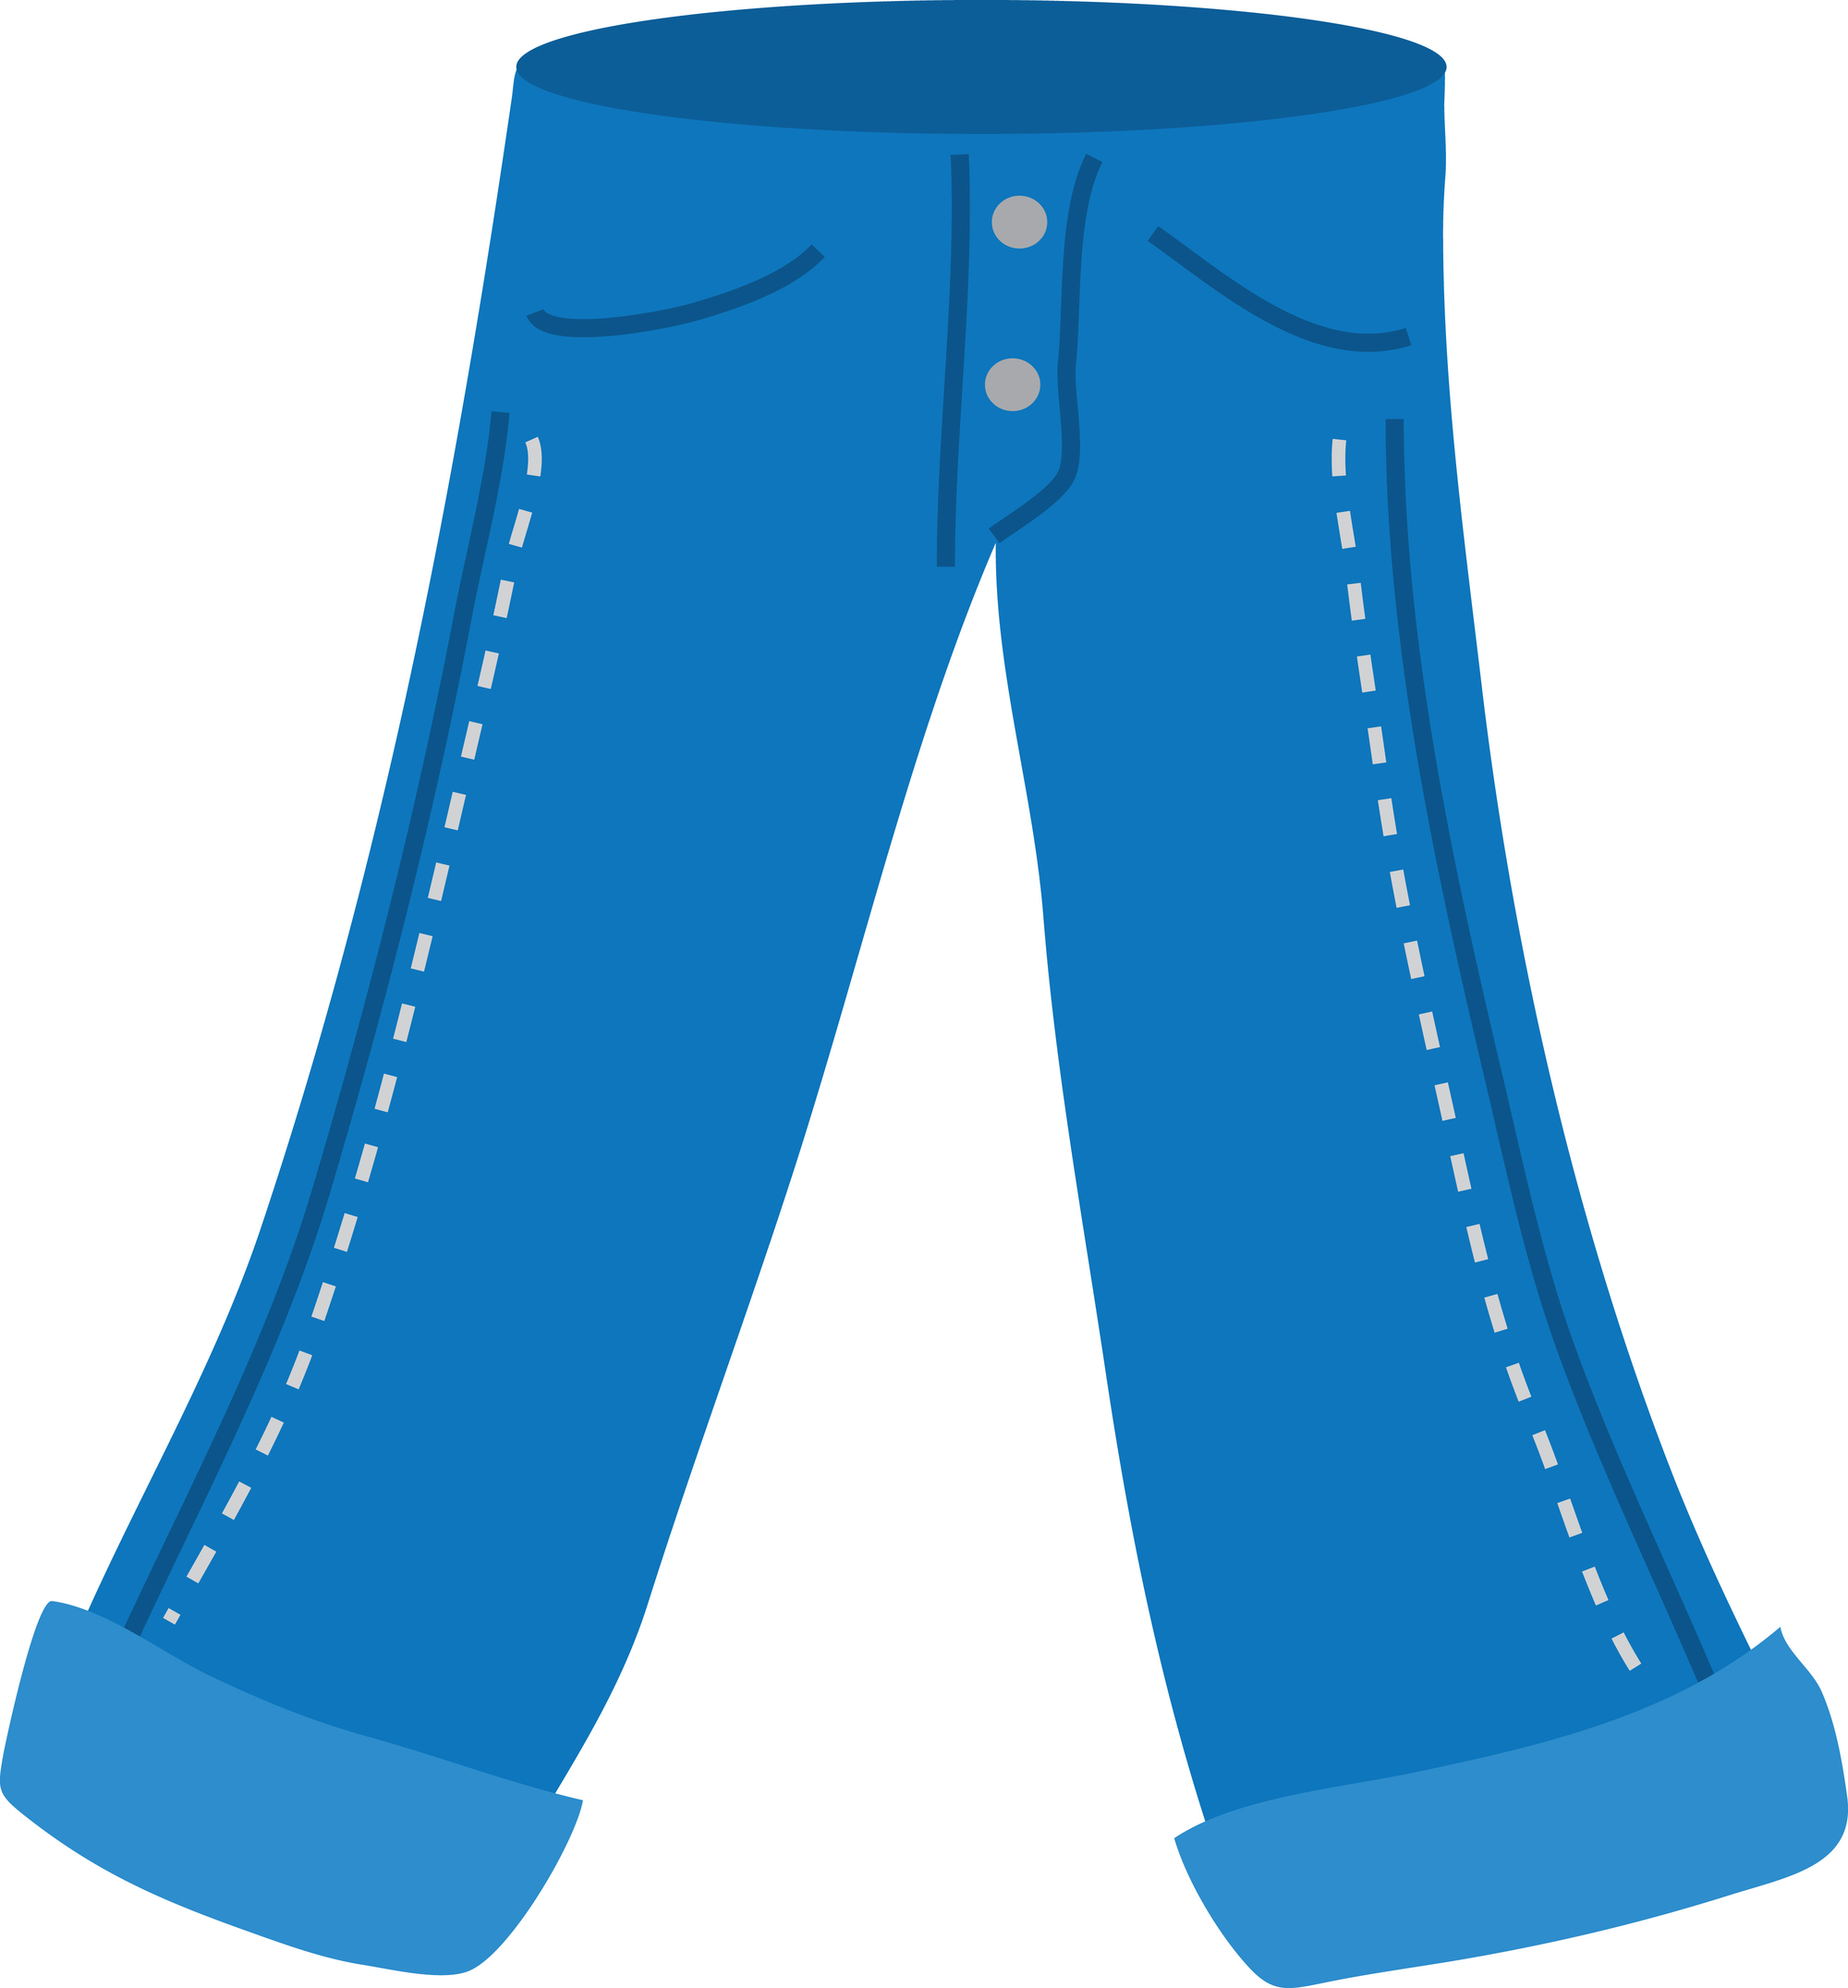 Shirt And Pants Clipart - Clipart Kid